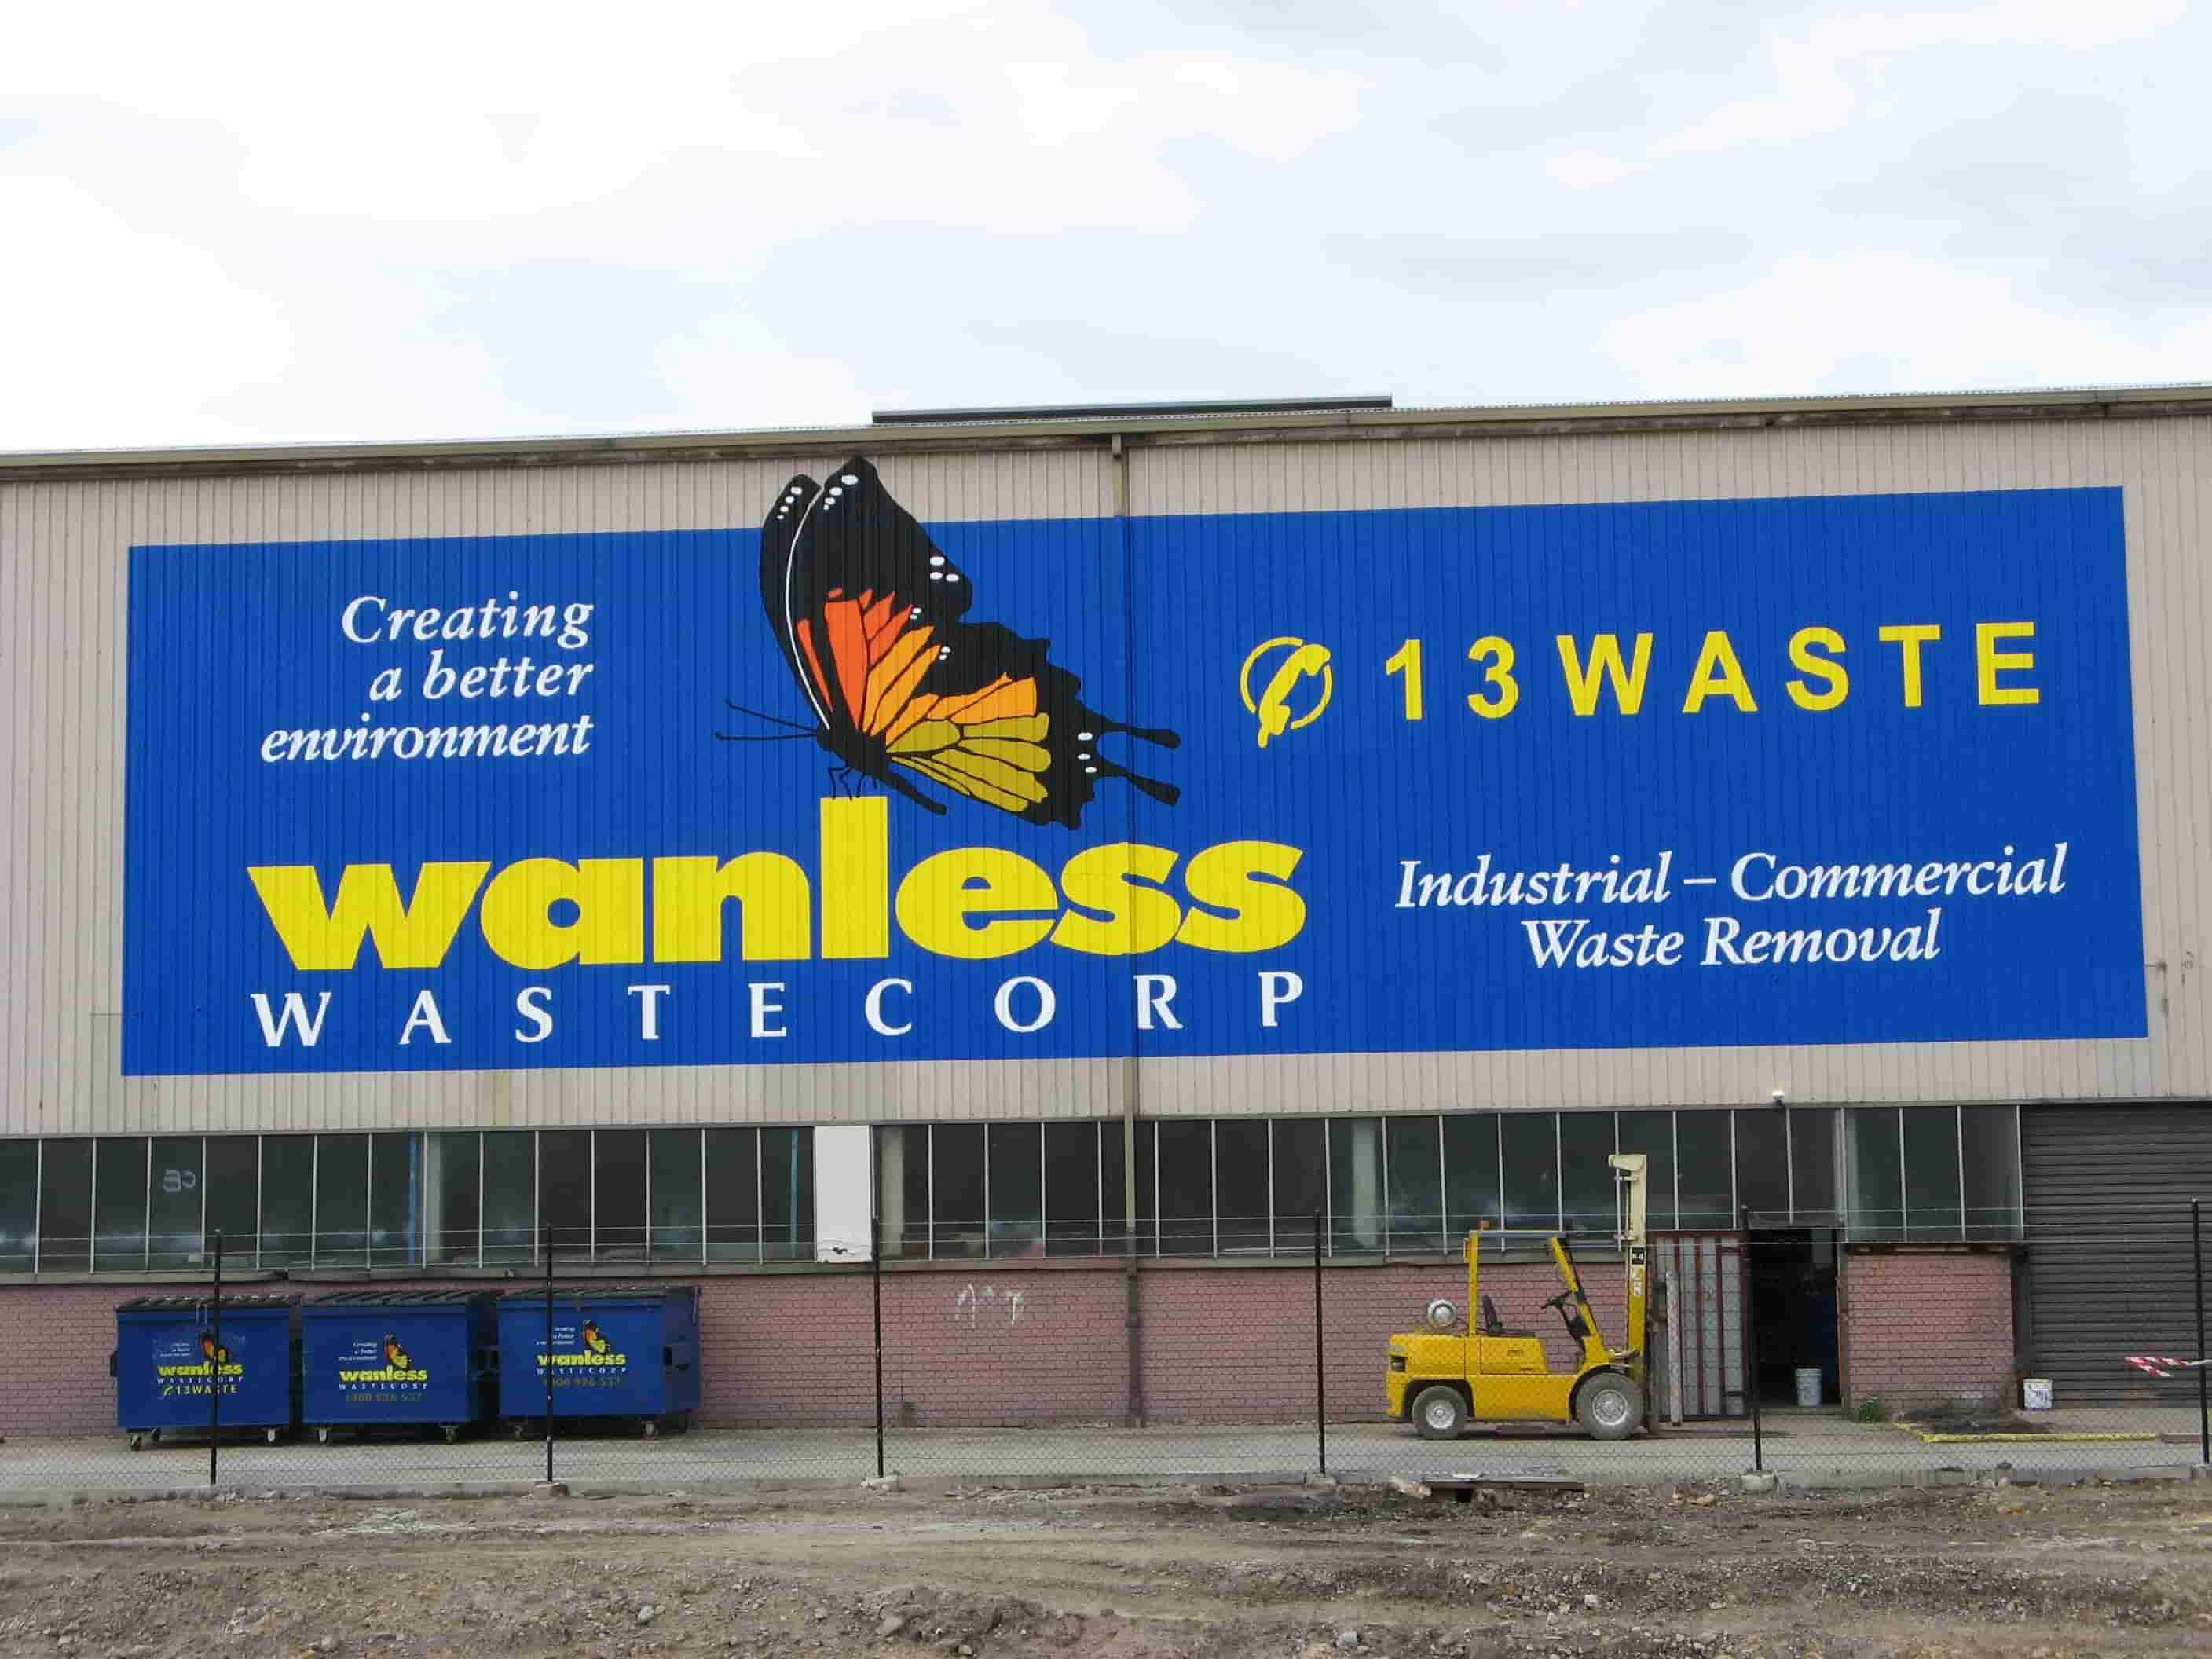 signwriting wanless wastecorp building signage